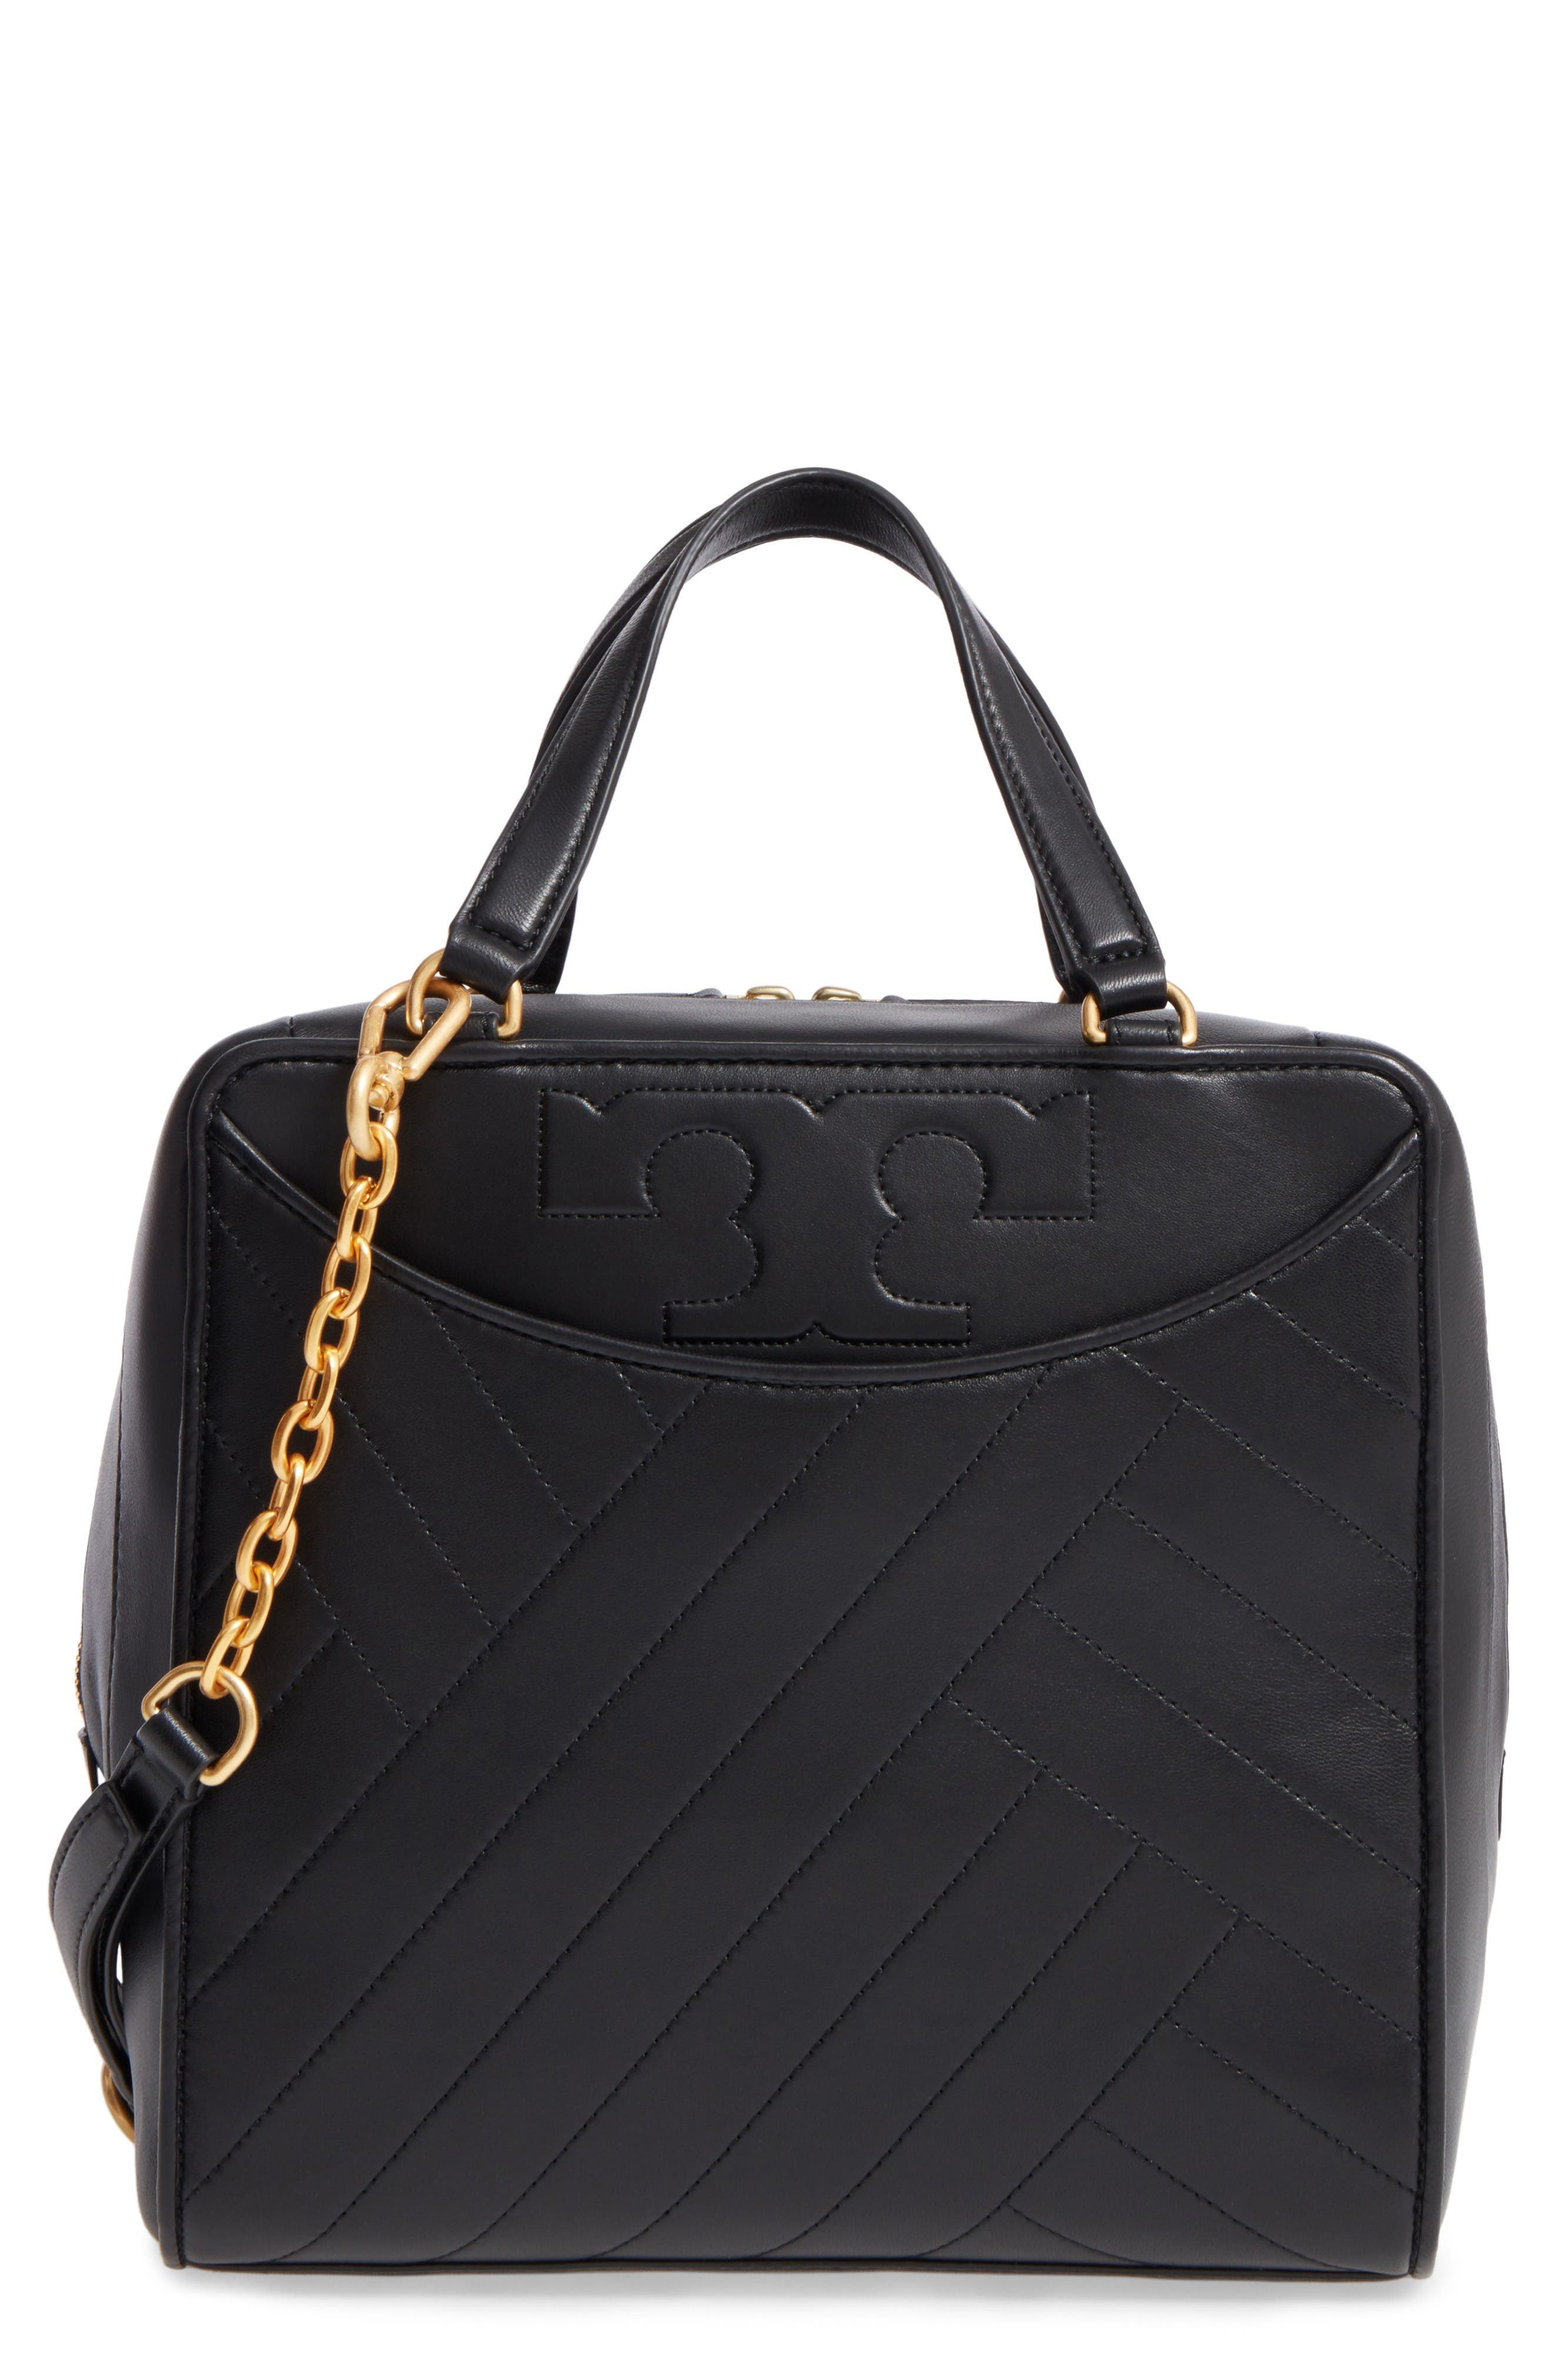 Alternate Image 1 Selected - Tory Burch Chevron Quilted Leather Satchel